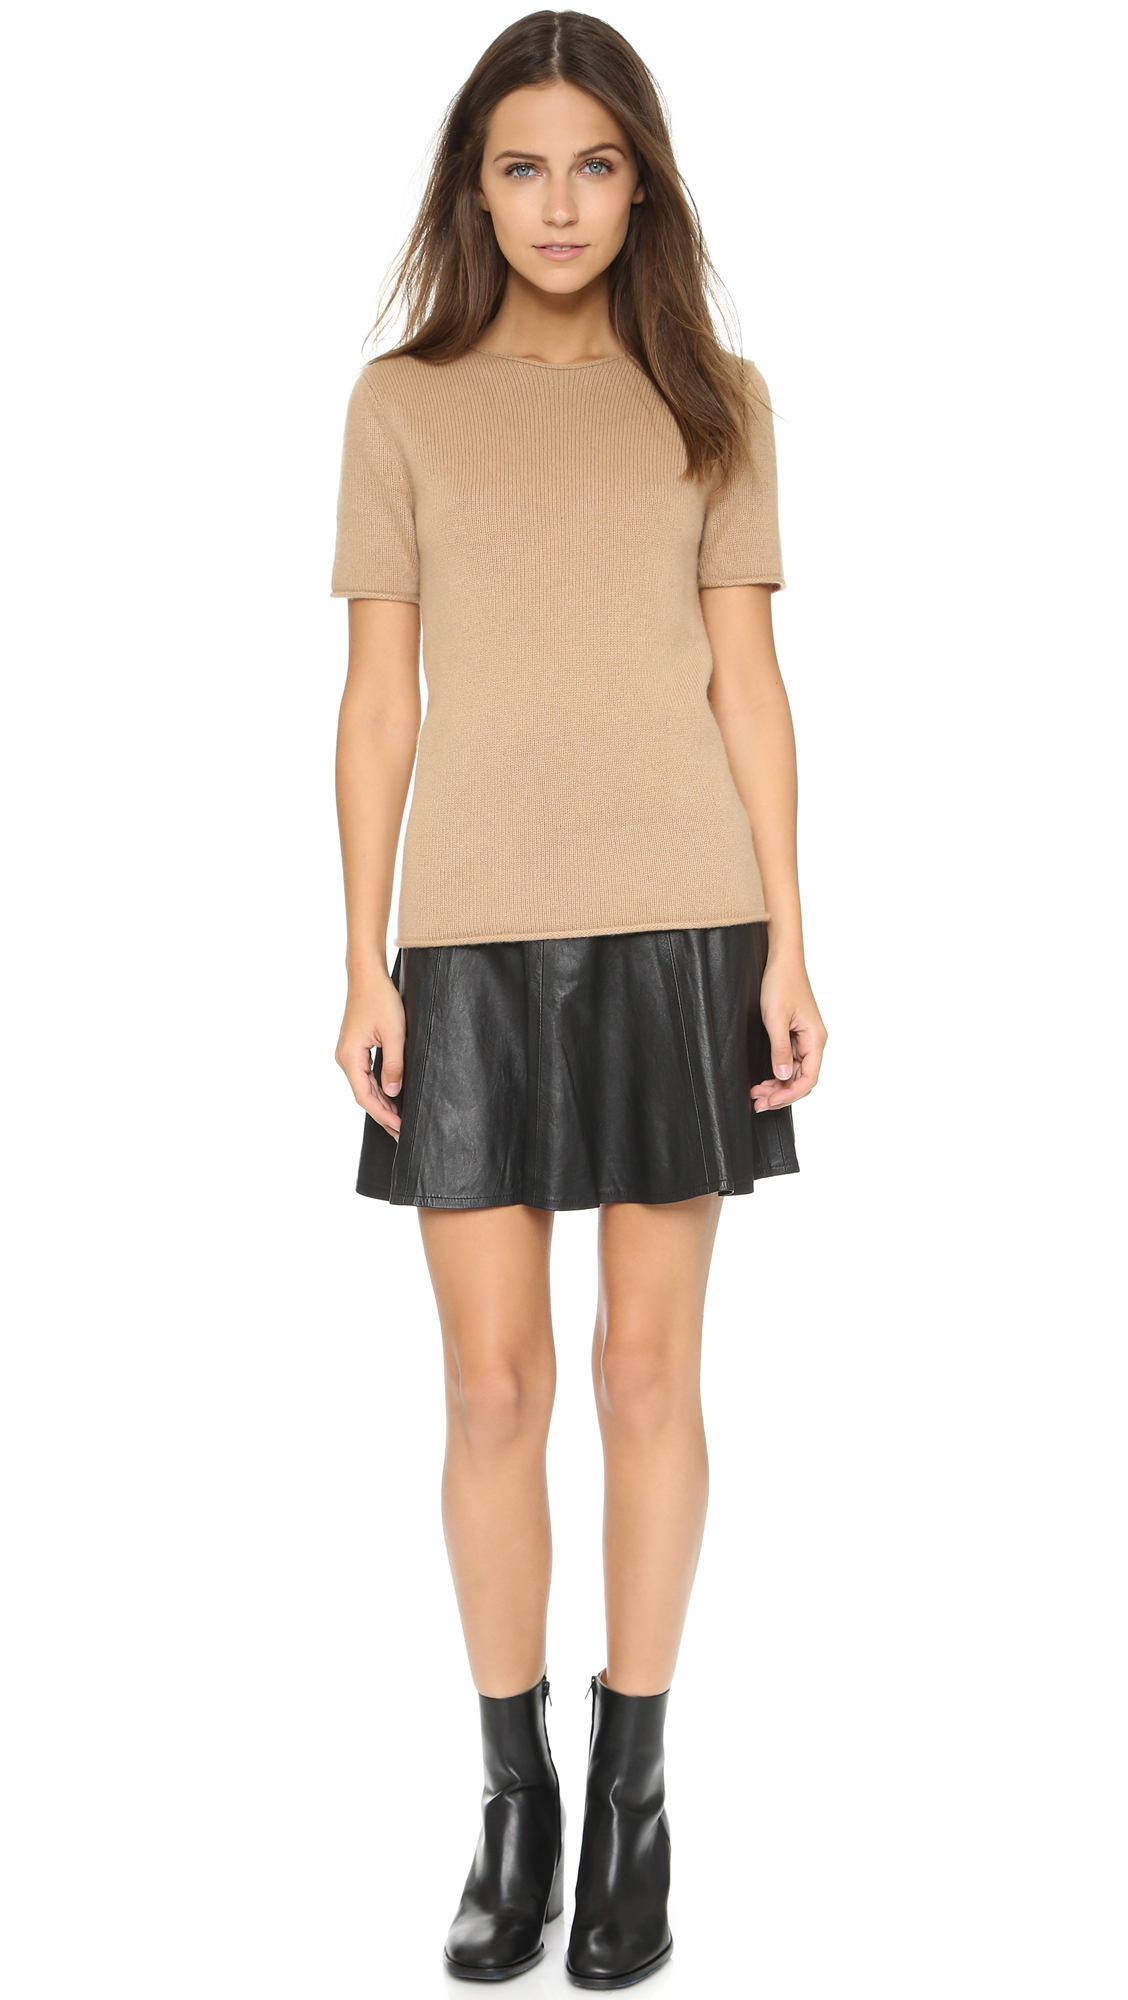 Theory Cashmere Tolleree Short Sleeve Sweater in Natural | Lyst